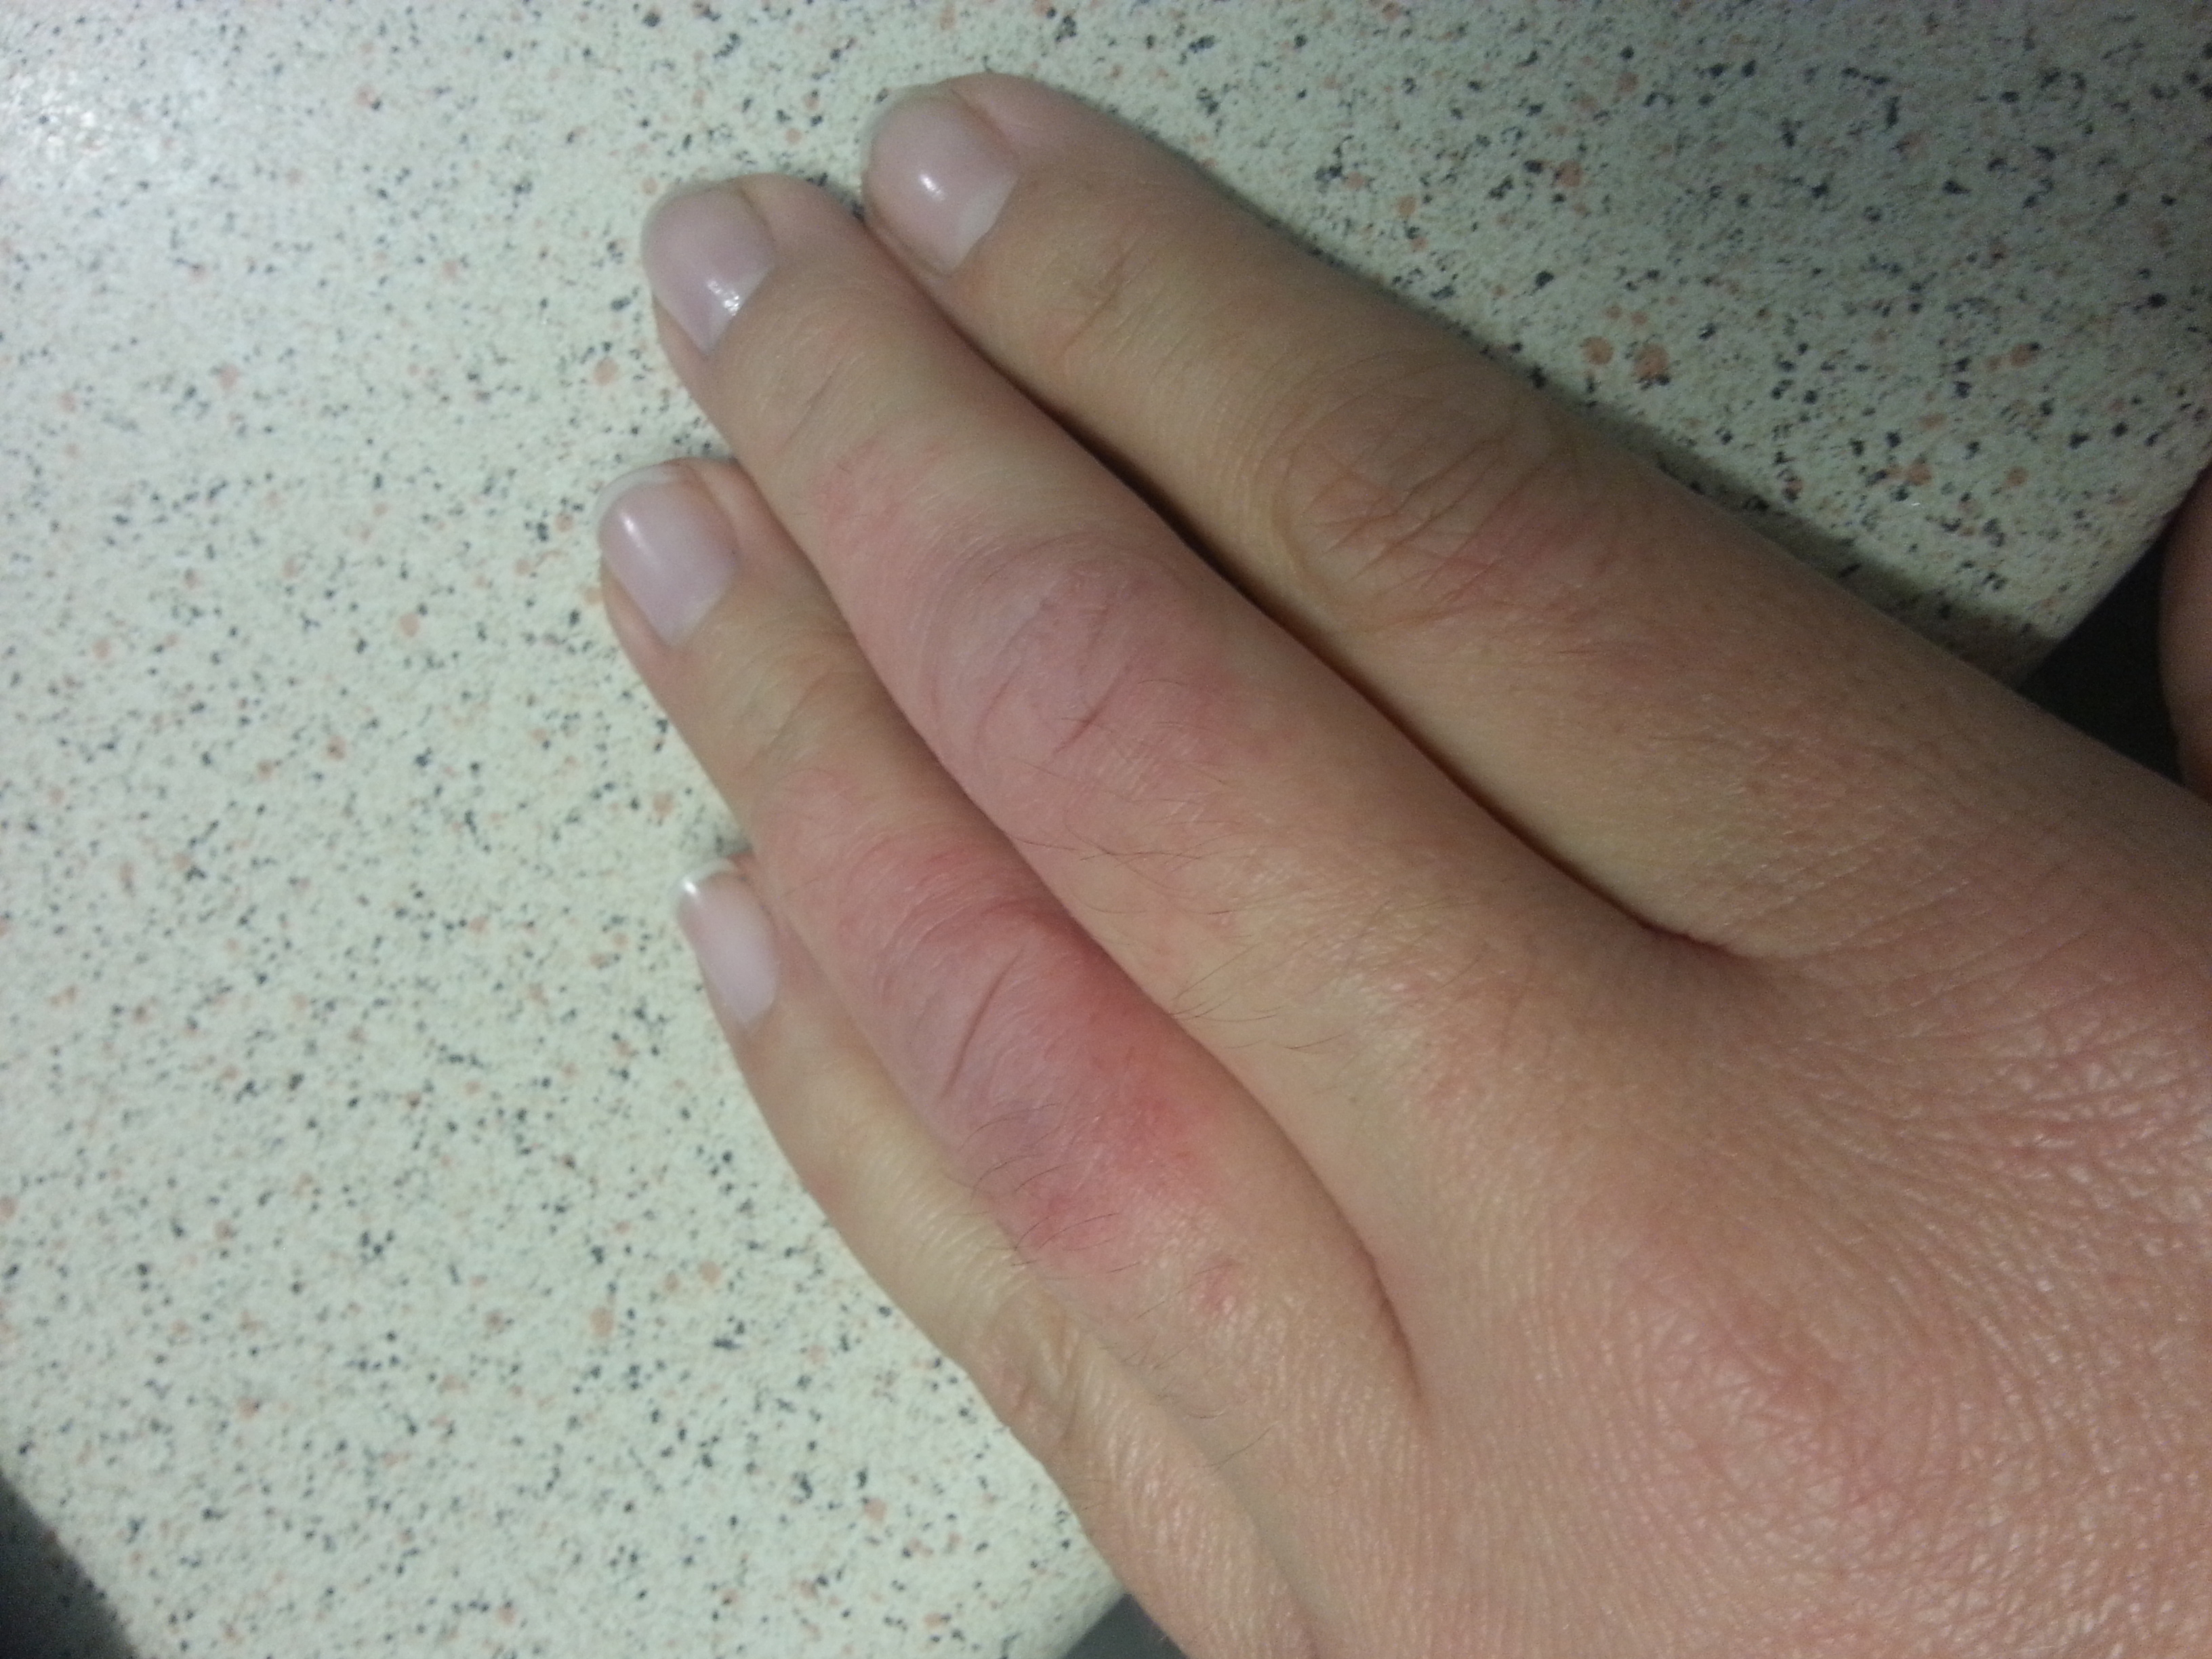 I Have A Red Dry Irratable Rash On Two Fingers On My Left Hand